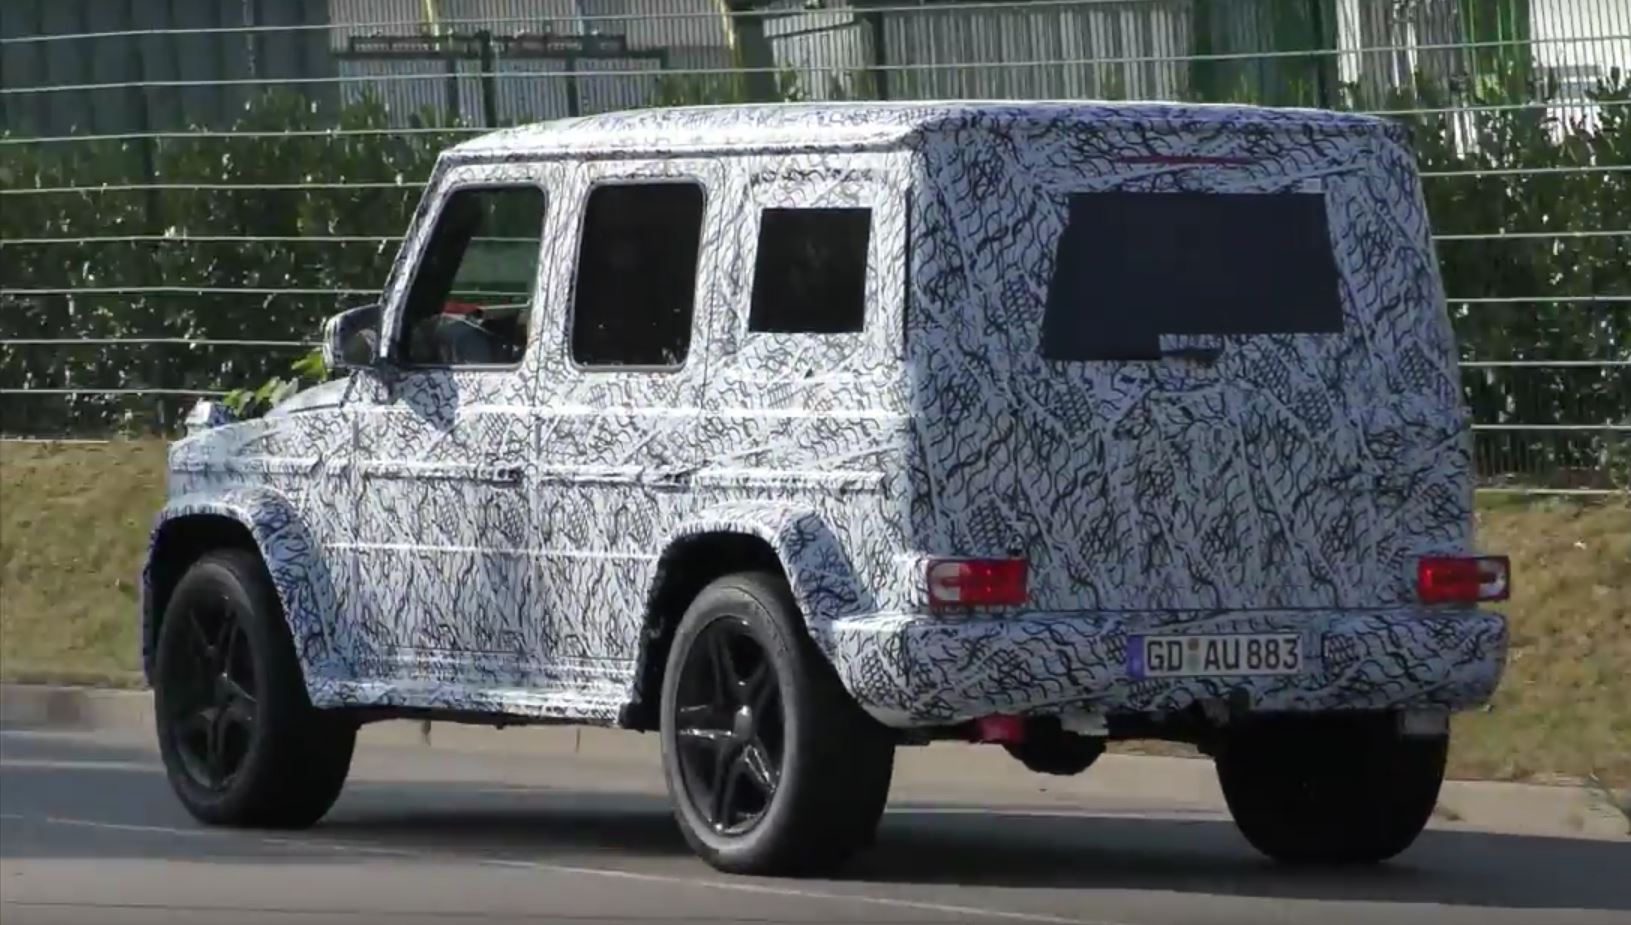 2018 mercedes g class looks like a tuning project in. Black Bedroom Furniture Sets. Home Design Ideas